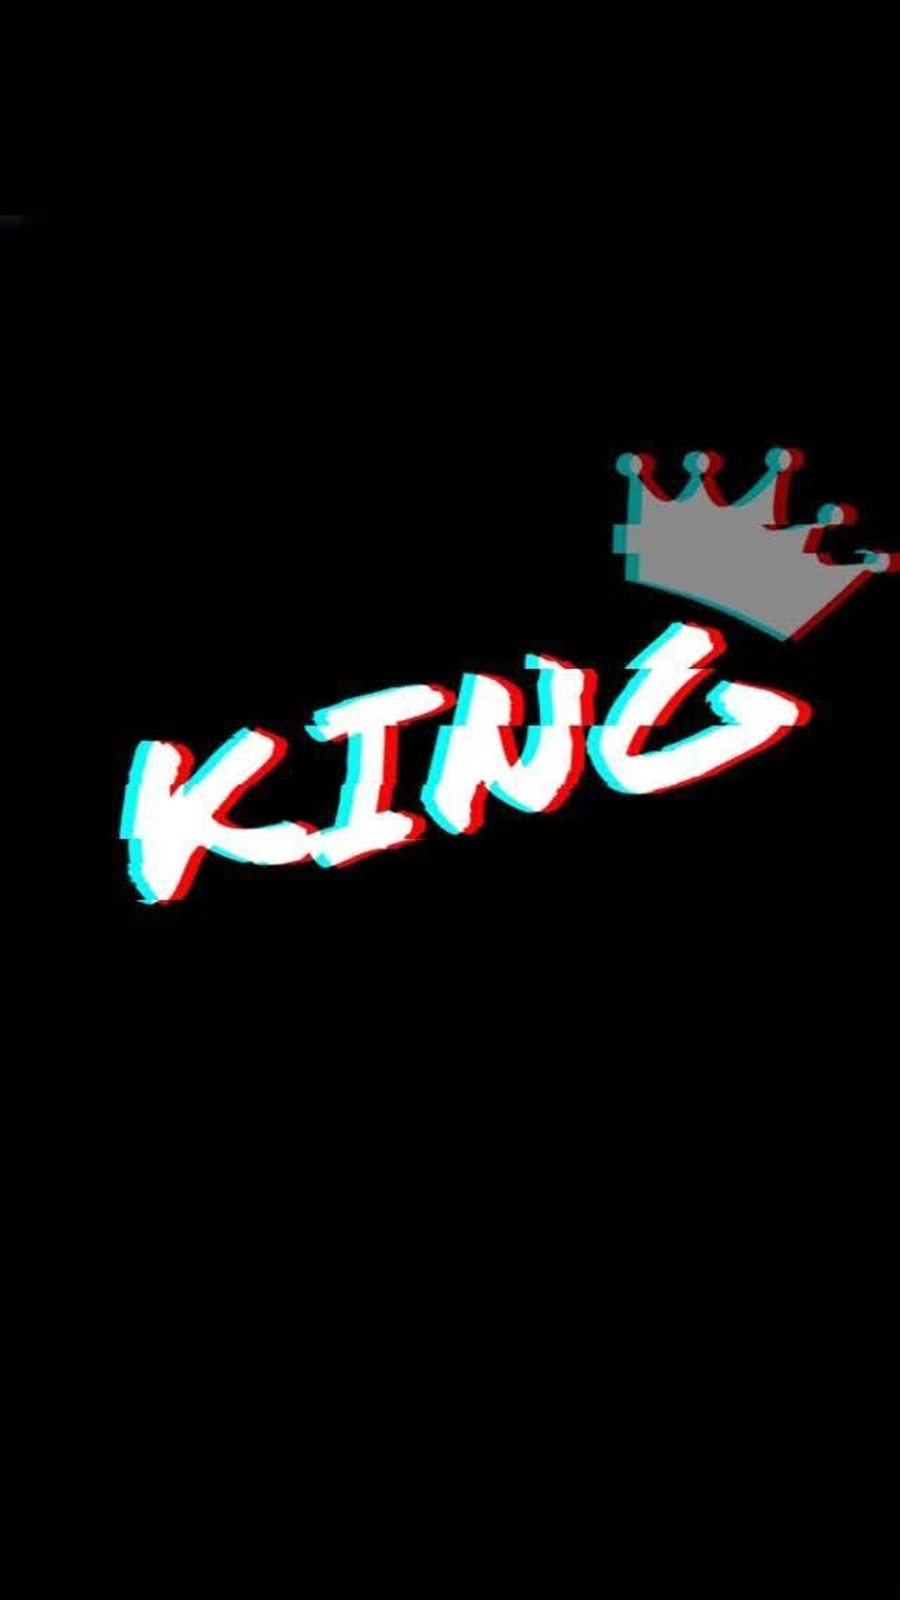 New King Wallpapers Free Download